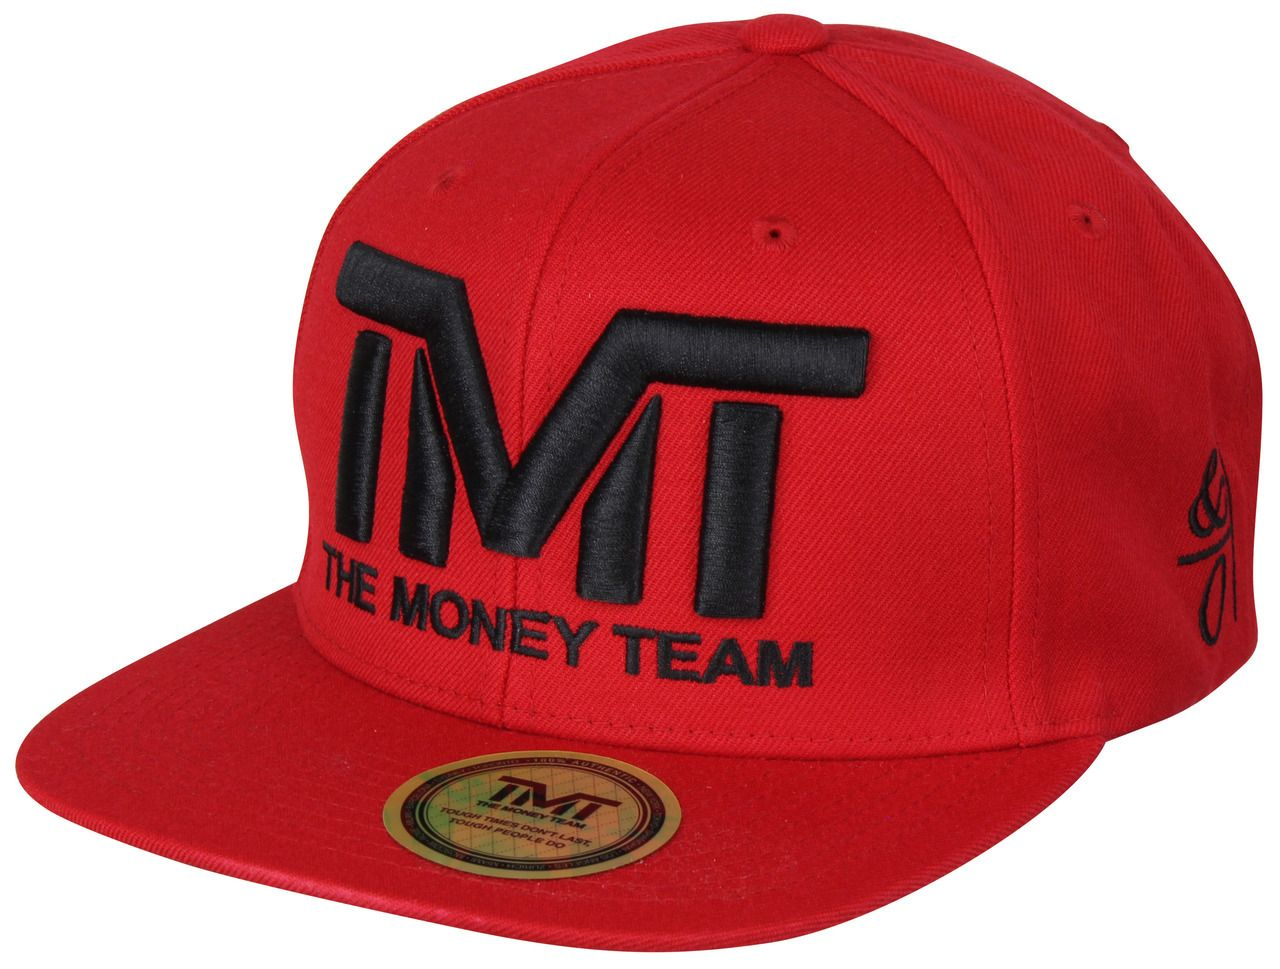 The Money Team TMT Floyd Mayweather Courtside Snapback Hat (Red Black) d853378ad18